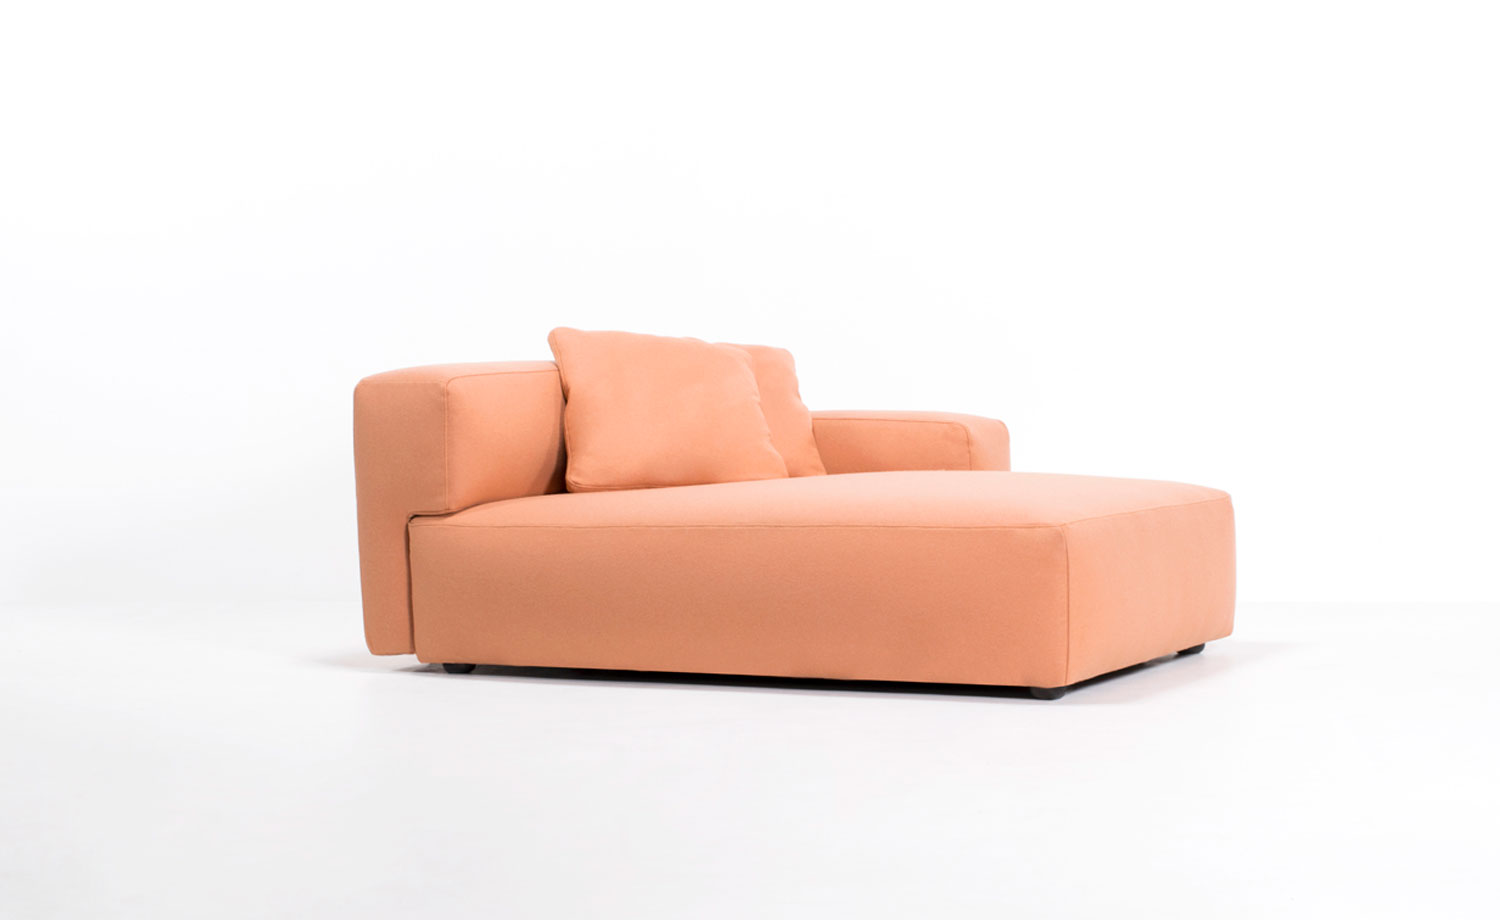 EXPO chaise longue RAF image #7